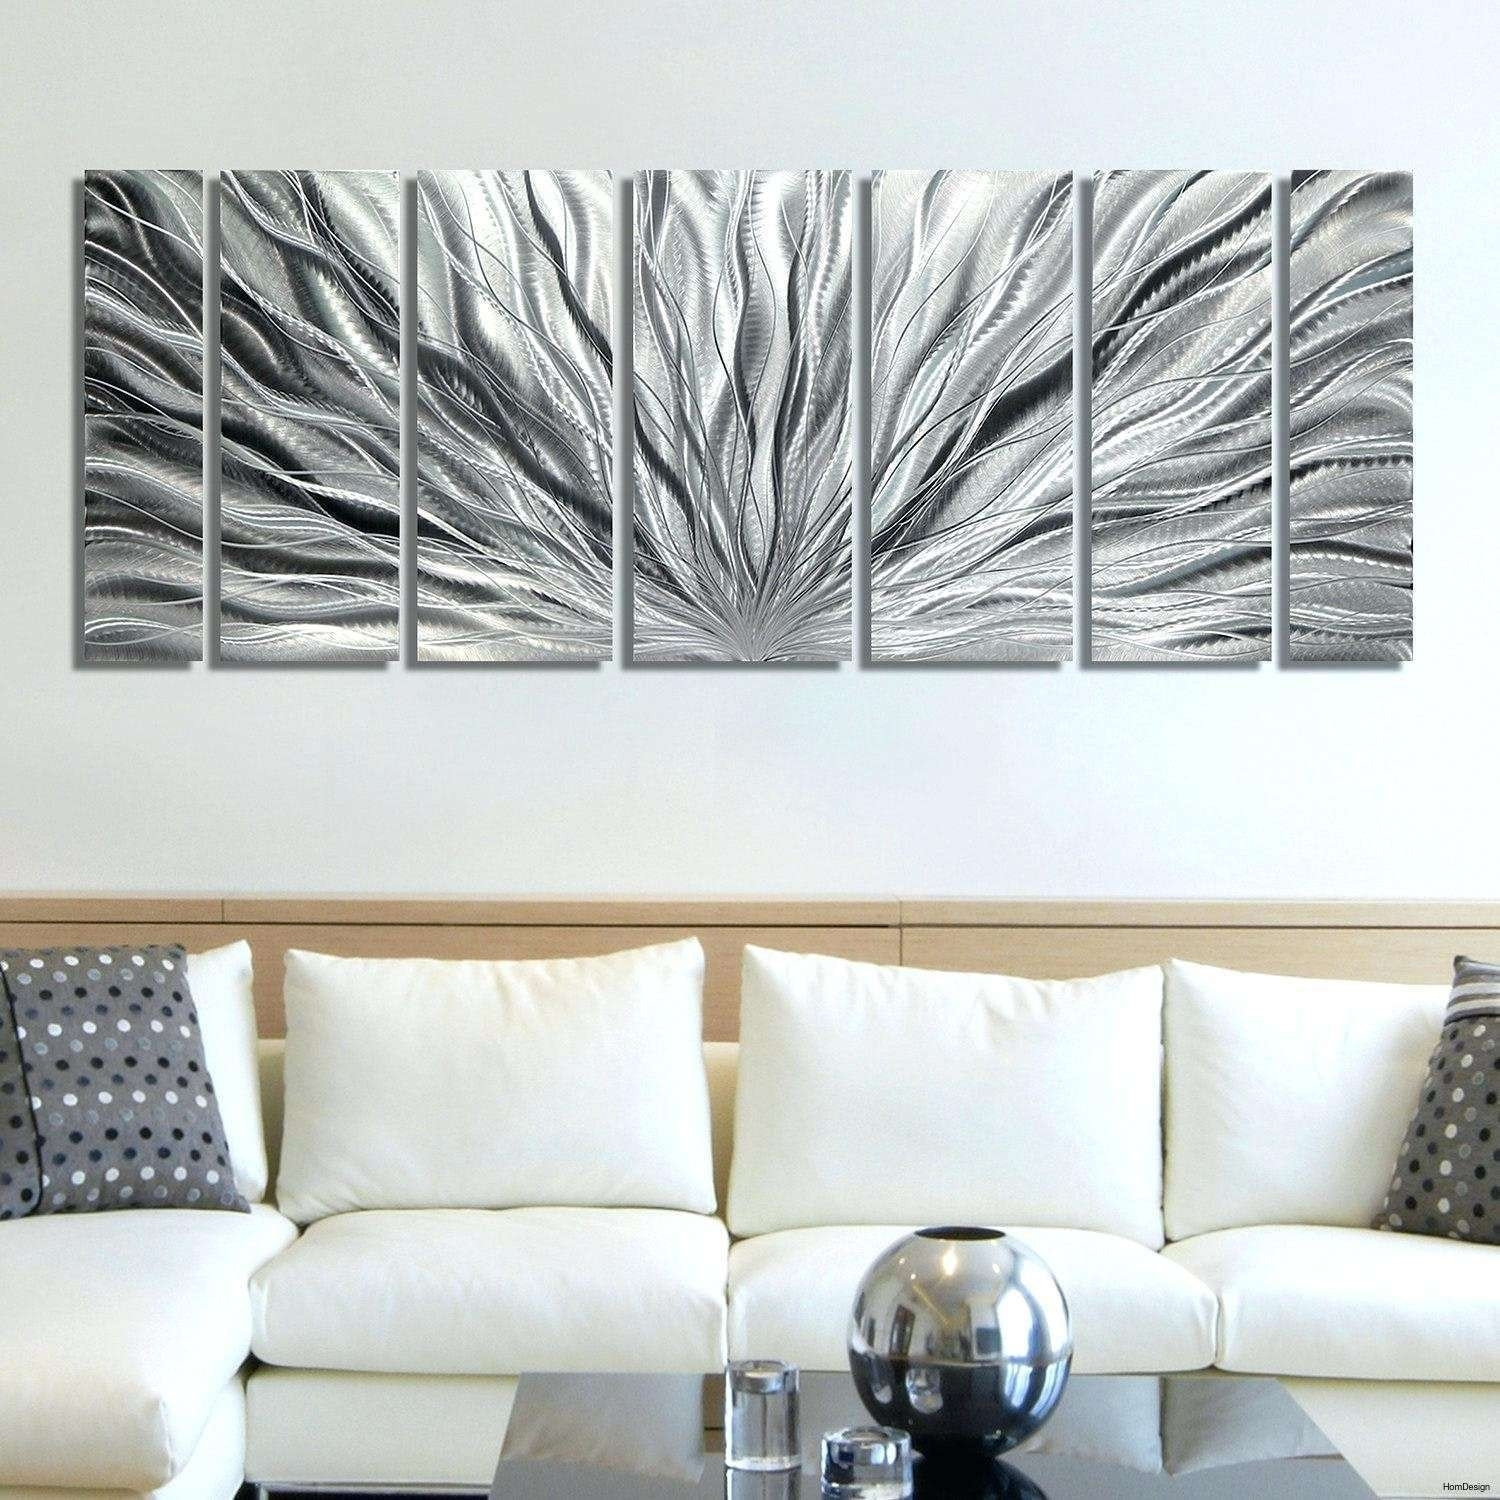 Wooden Wall Uk Lovely 32 Lovely Unusual Wall Art Uk – Suldoz Pertaining To Most Popular Unusual Wall Art (Gallery 19 of 20)